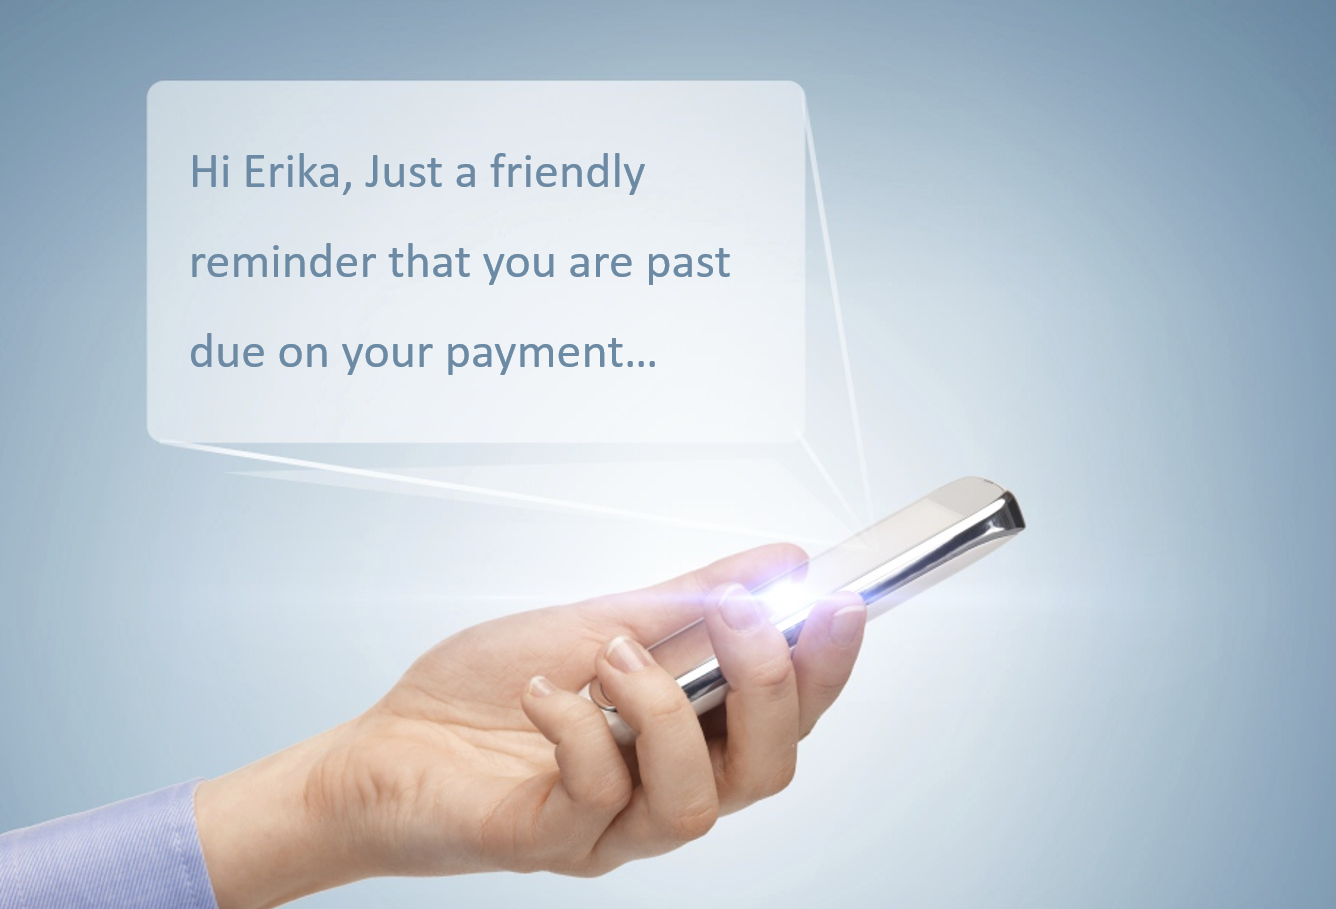 Woman's hand holding a smartphone with a personalised message bubble telling her she is past due on payment